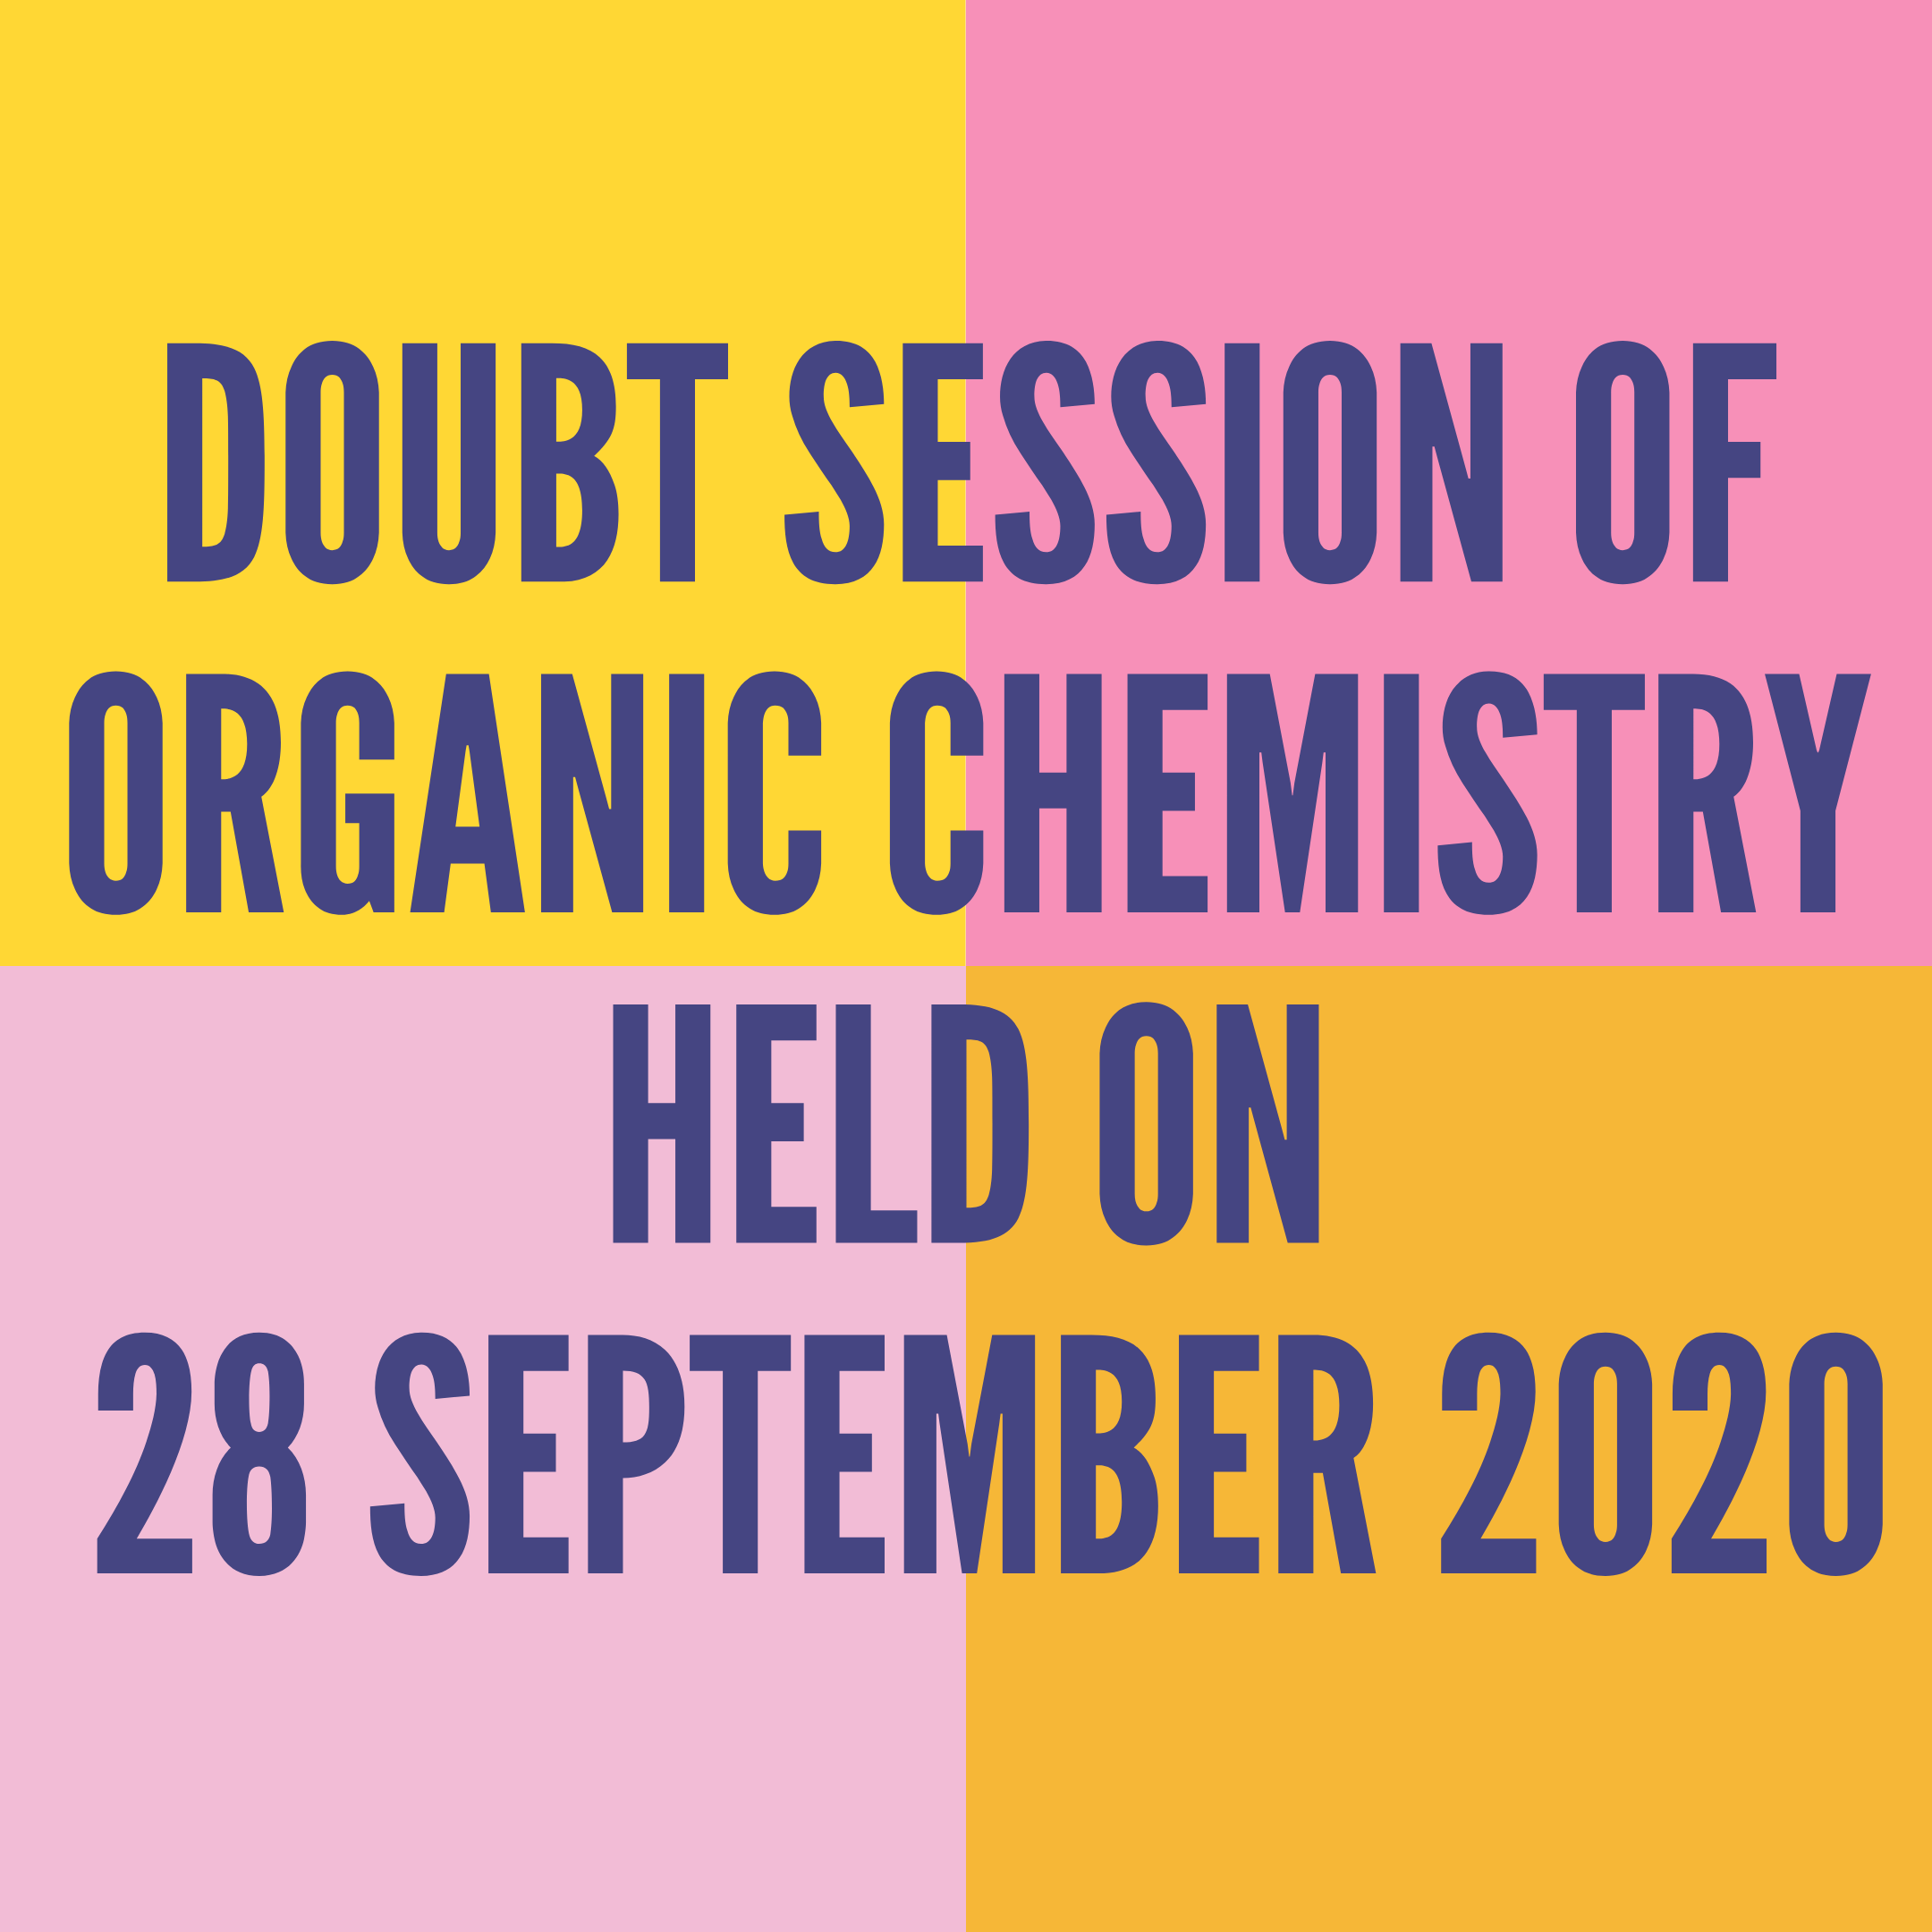 DOUBT SESSION OF ORGANIC CHEMISTRY HELD ON 28 SEPTEMBER 2020